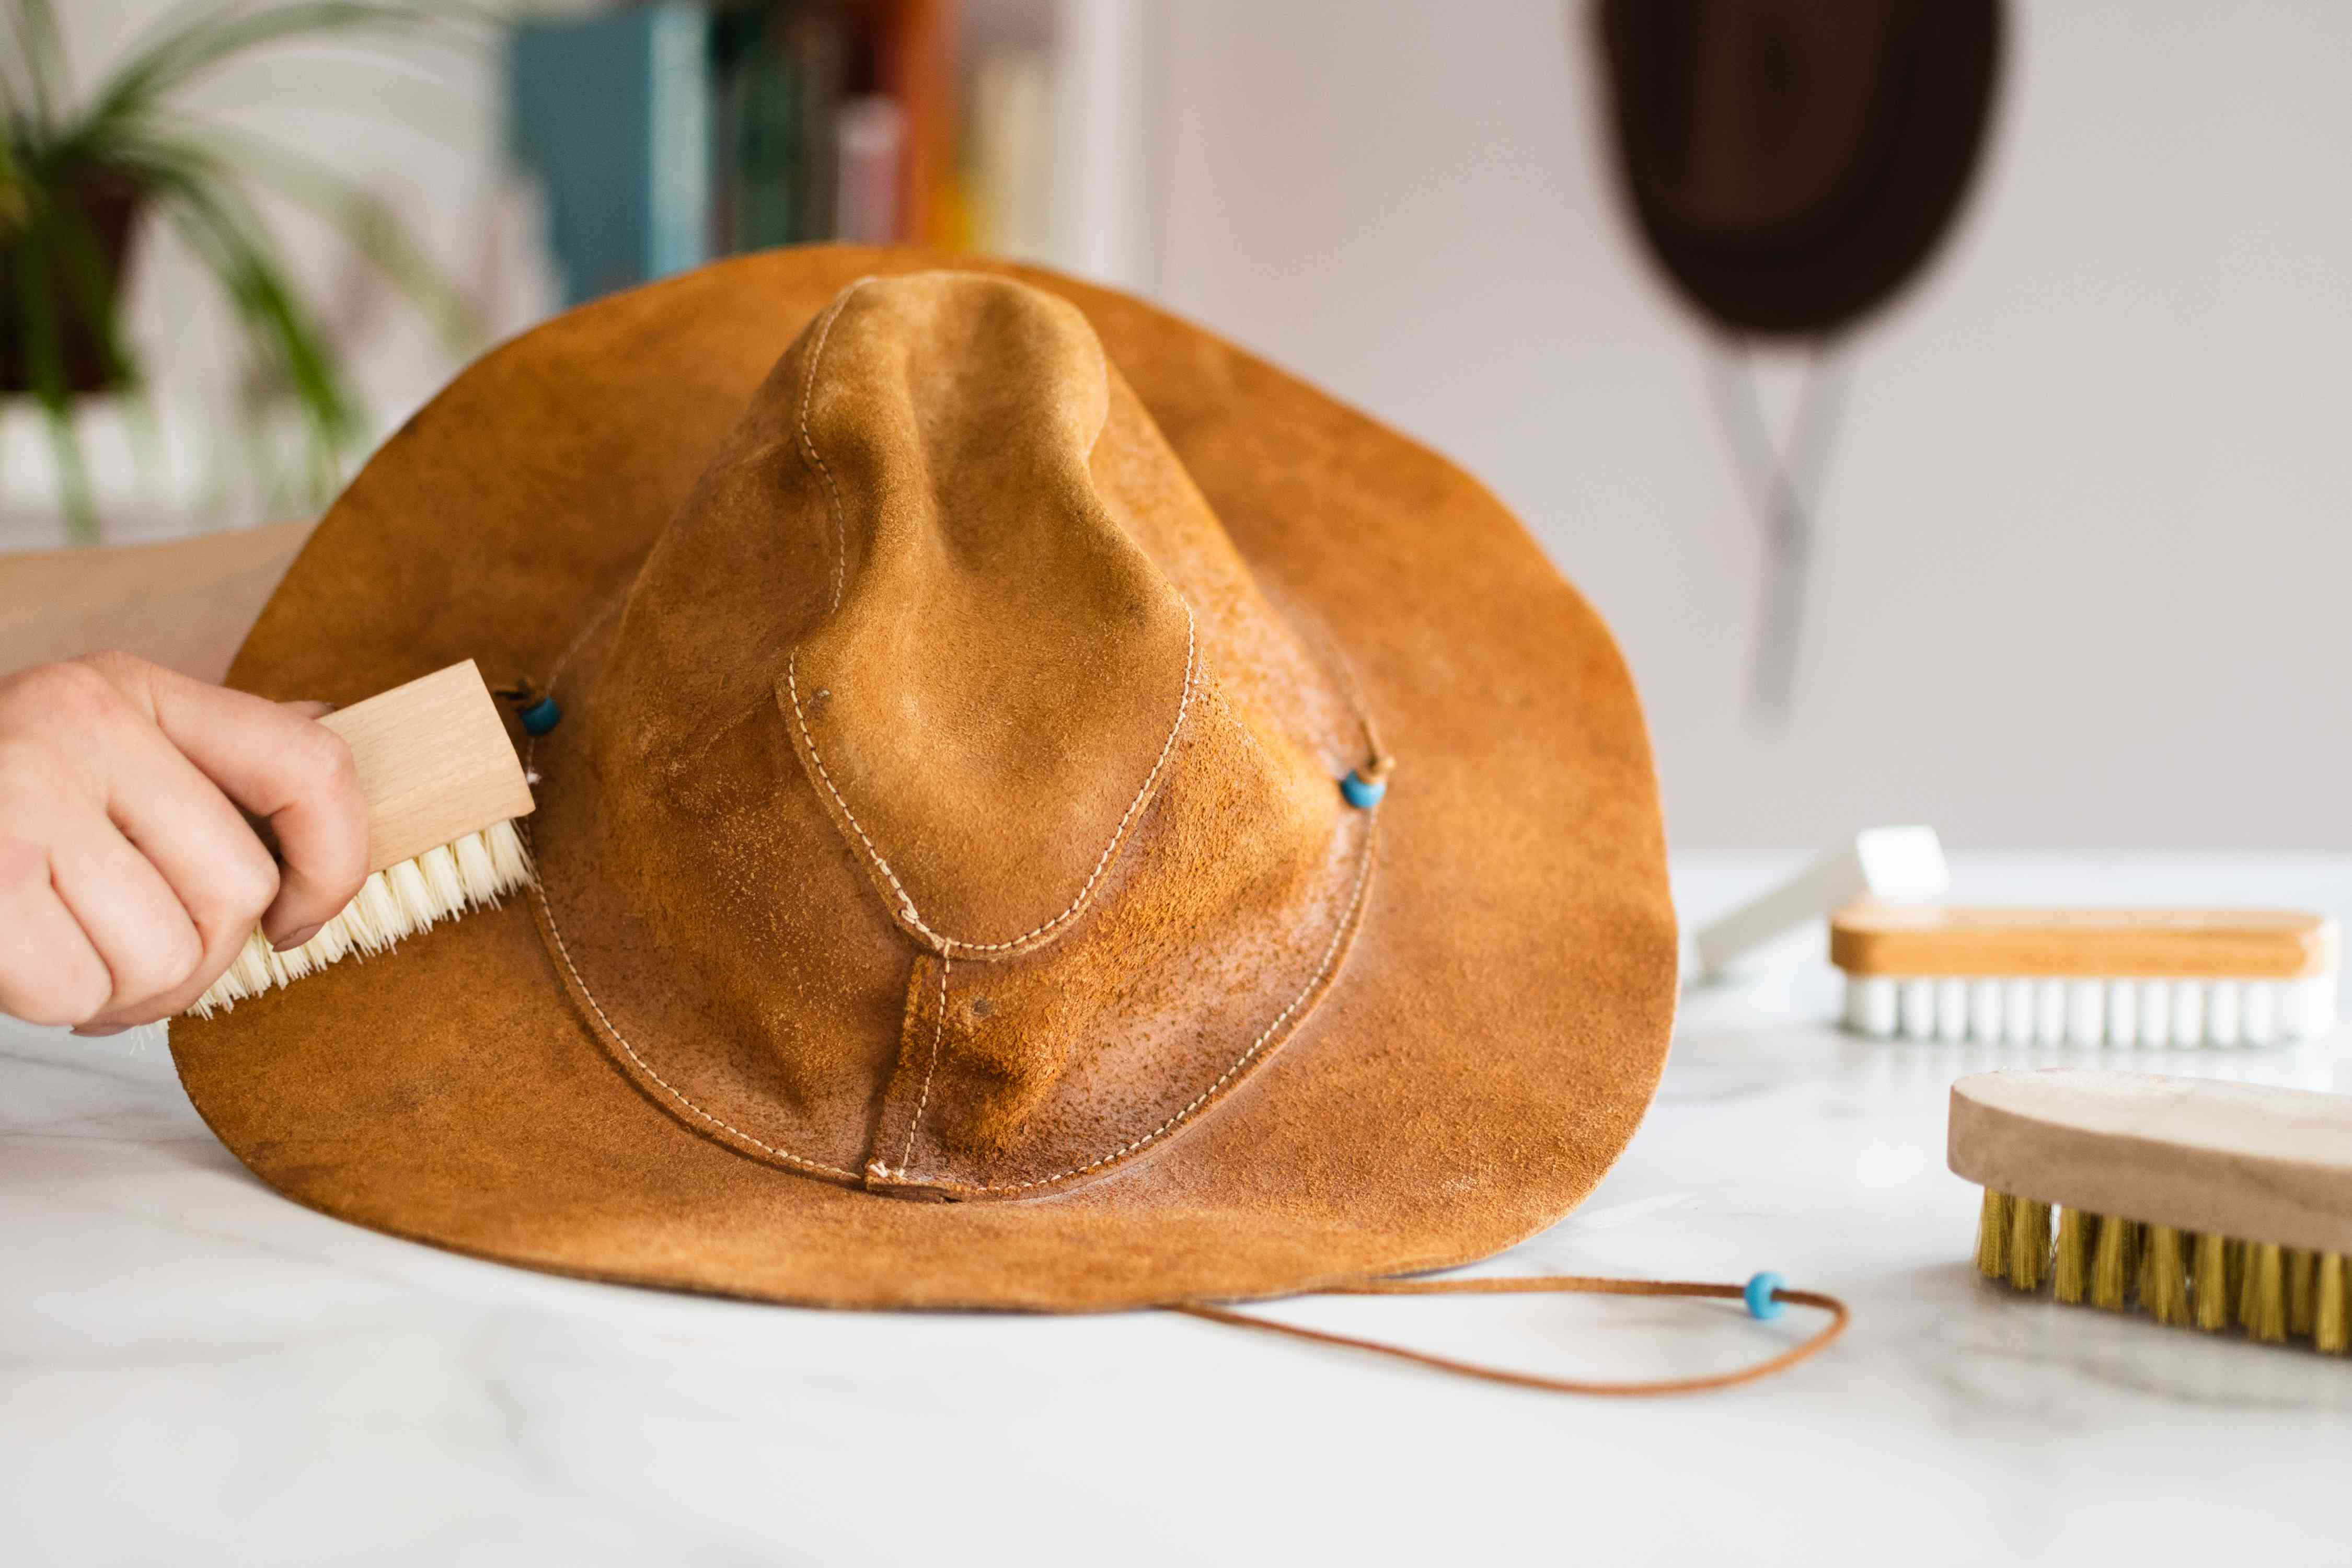 Light brown suede leather hat cleaned with a soft-bristled brush